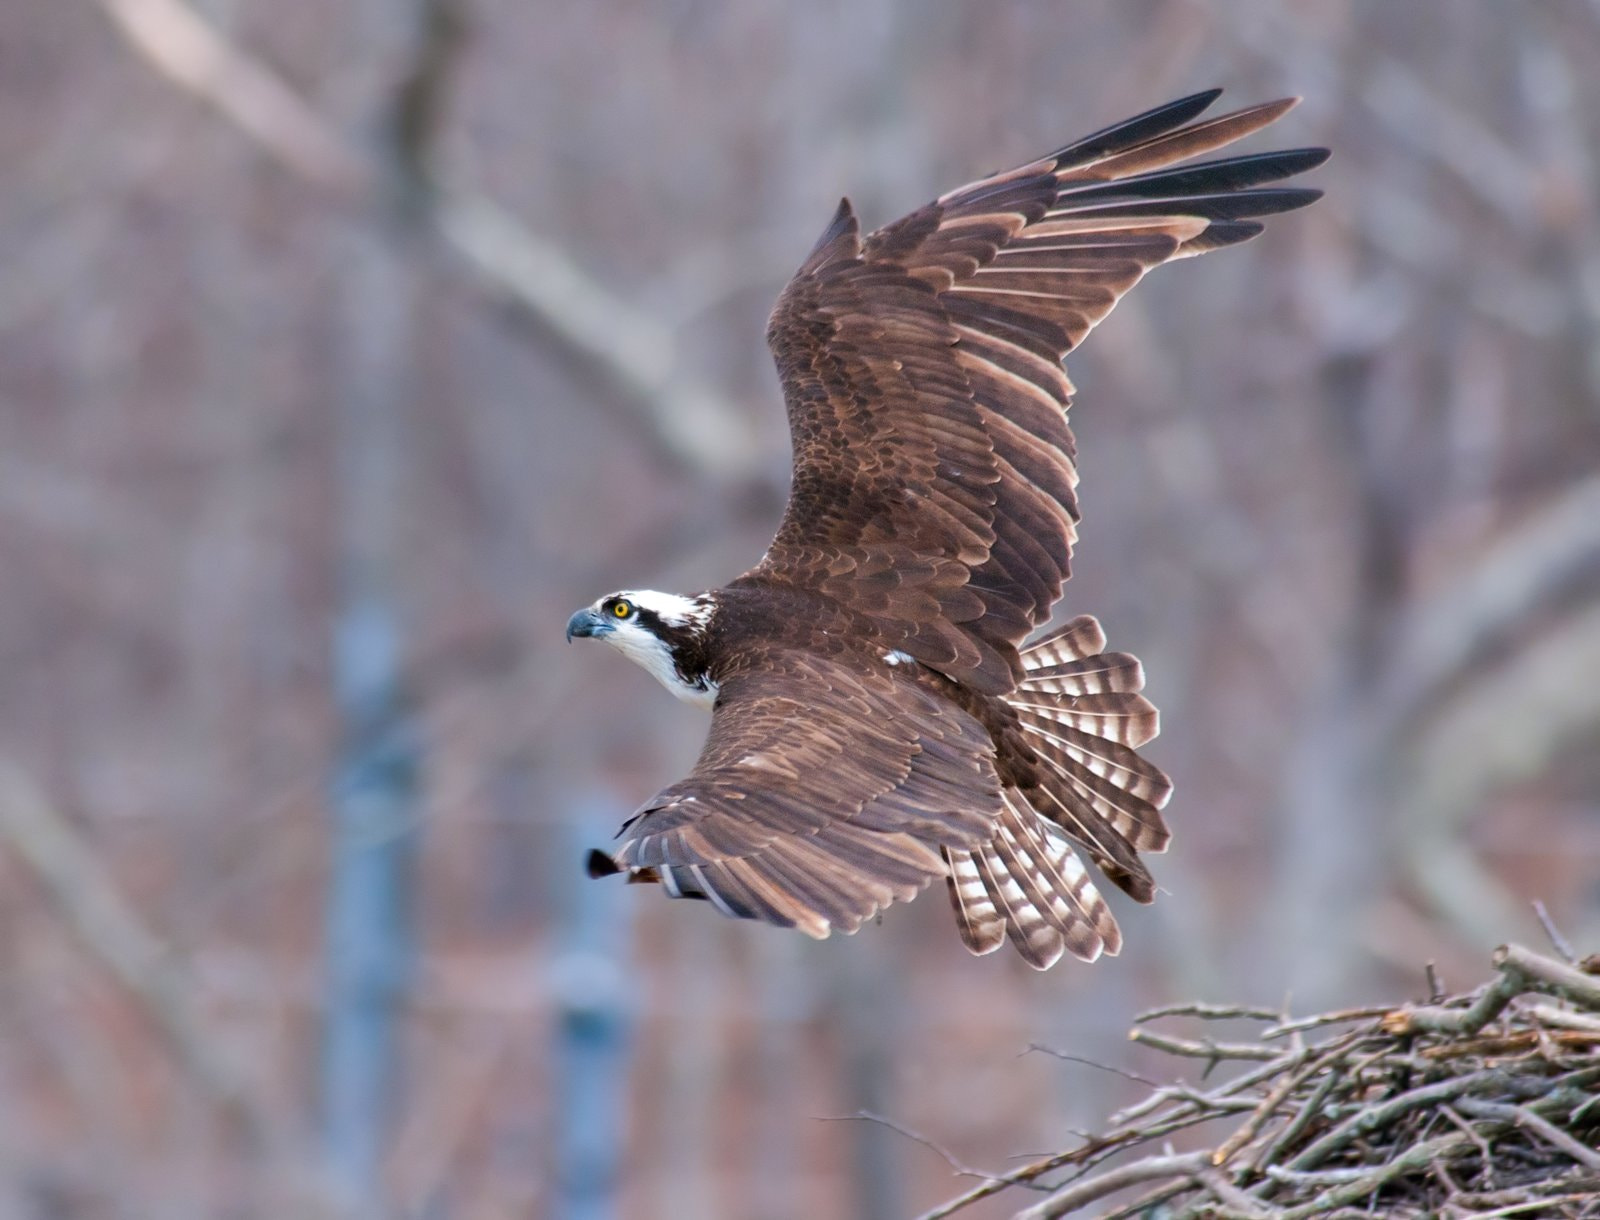 Photograph Osprey leaving the nest by Kristofer Rowe on 500px